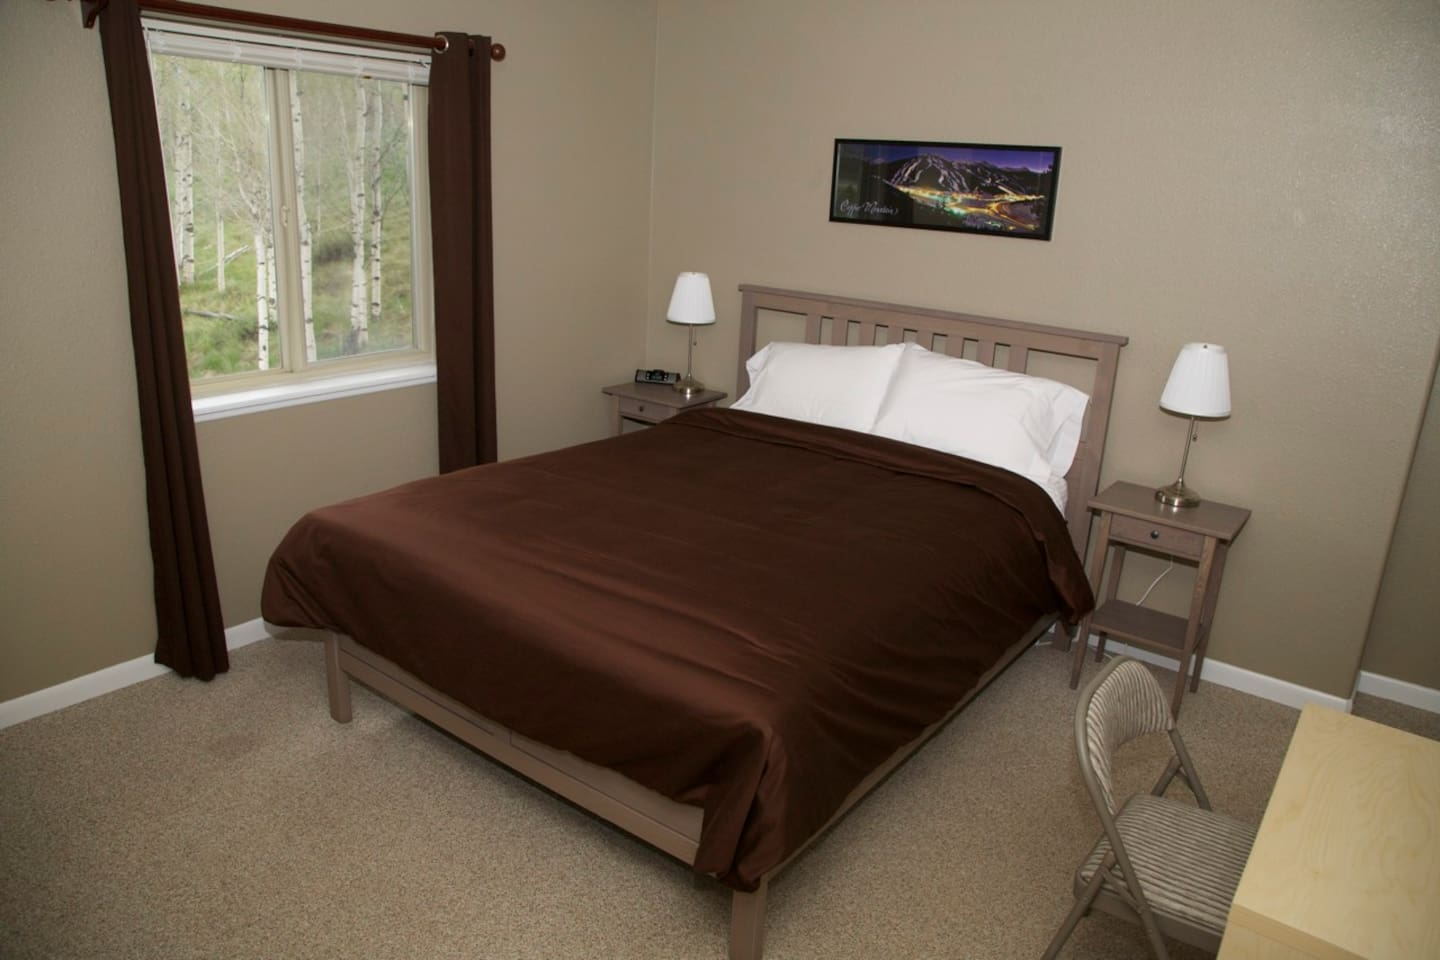 Look out on a beautiful aspen grove from the master bedroom